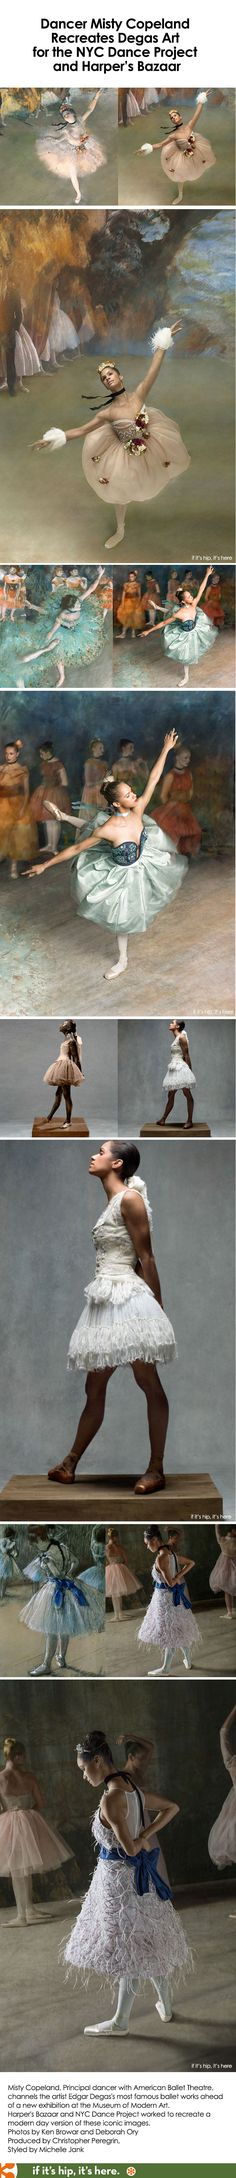 Misty Copeland and the NYC Dance Project create a Degas-themed photoshoot for Harper's Bazaar.